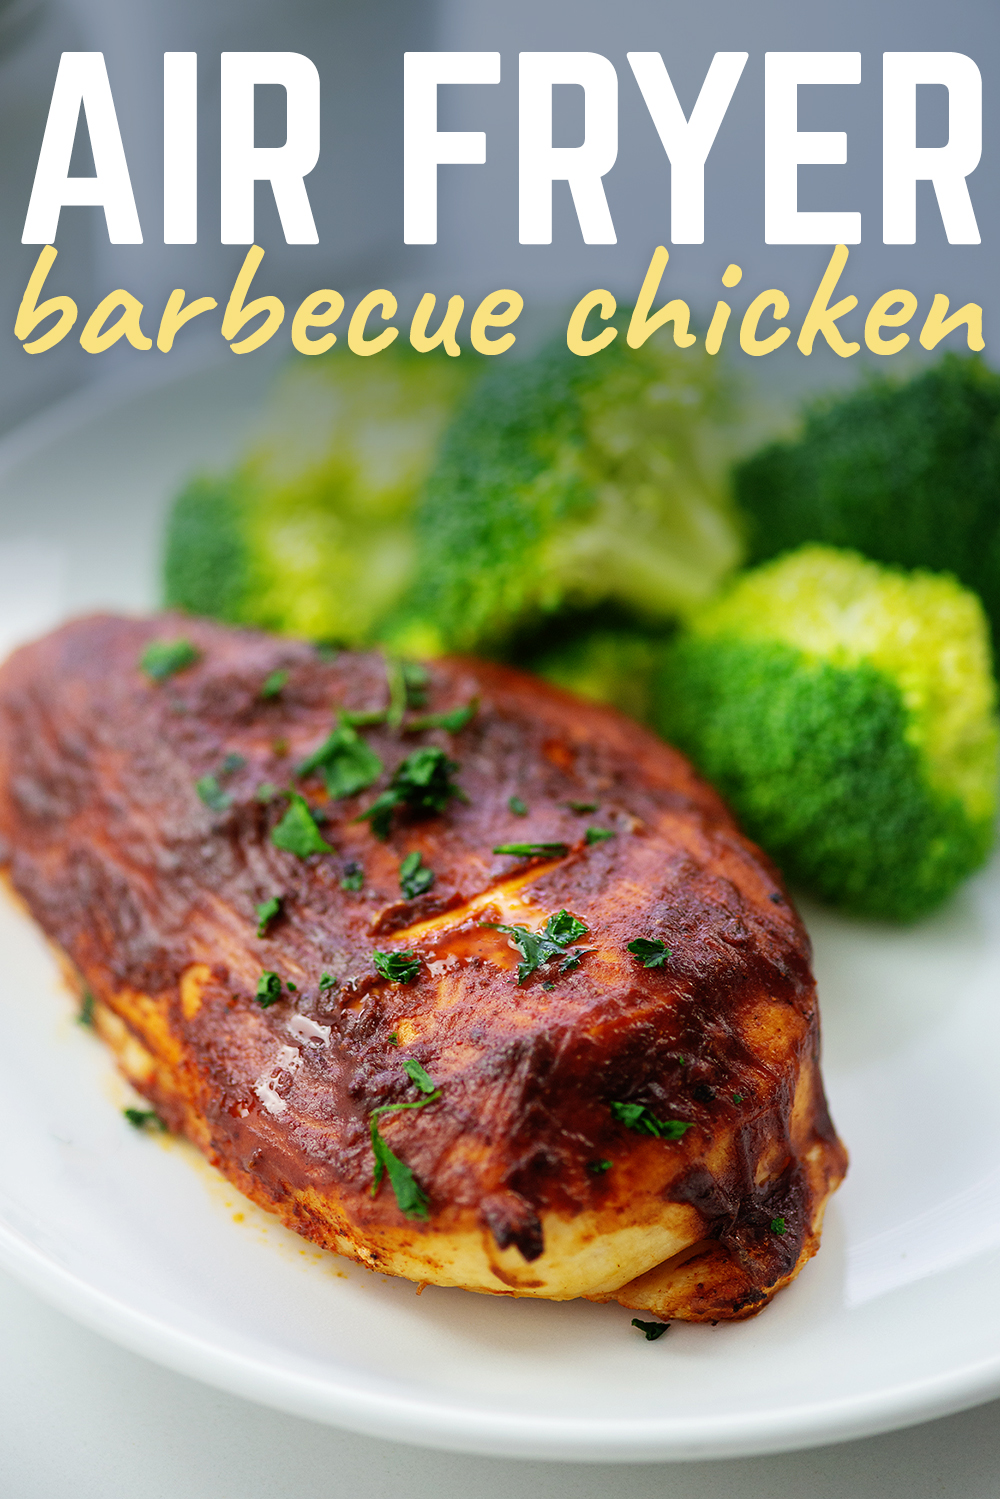 BBQ chicken is as good as grilled when you cook it in the air fryer.  Try this recipe for yourself!